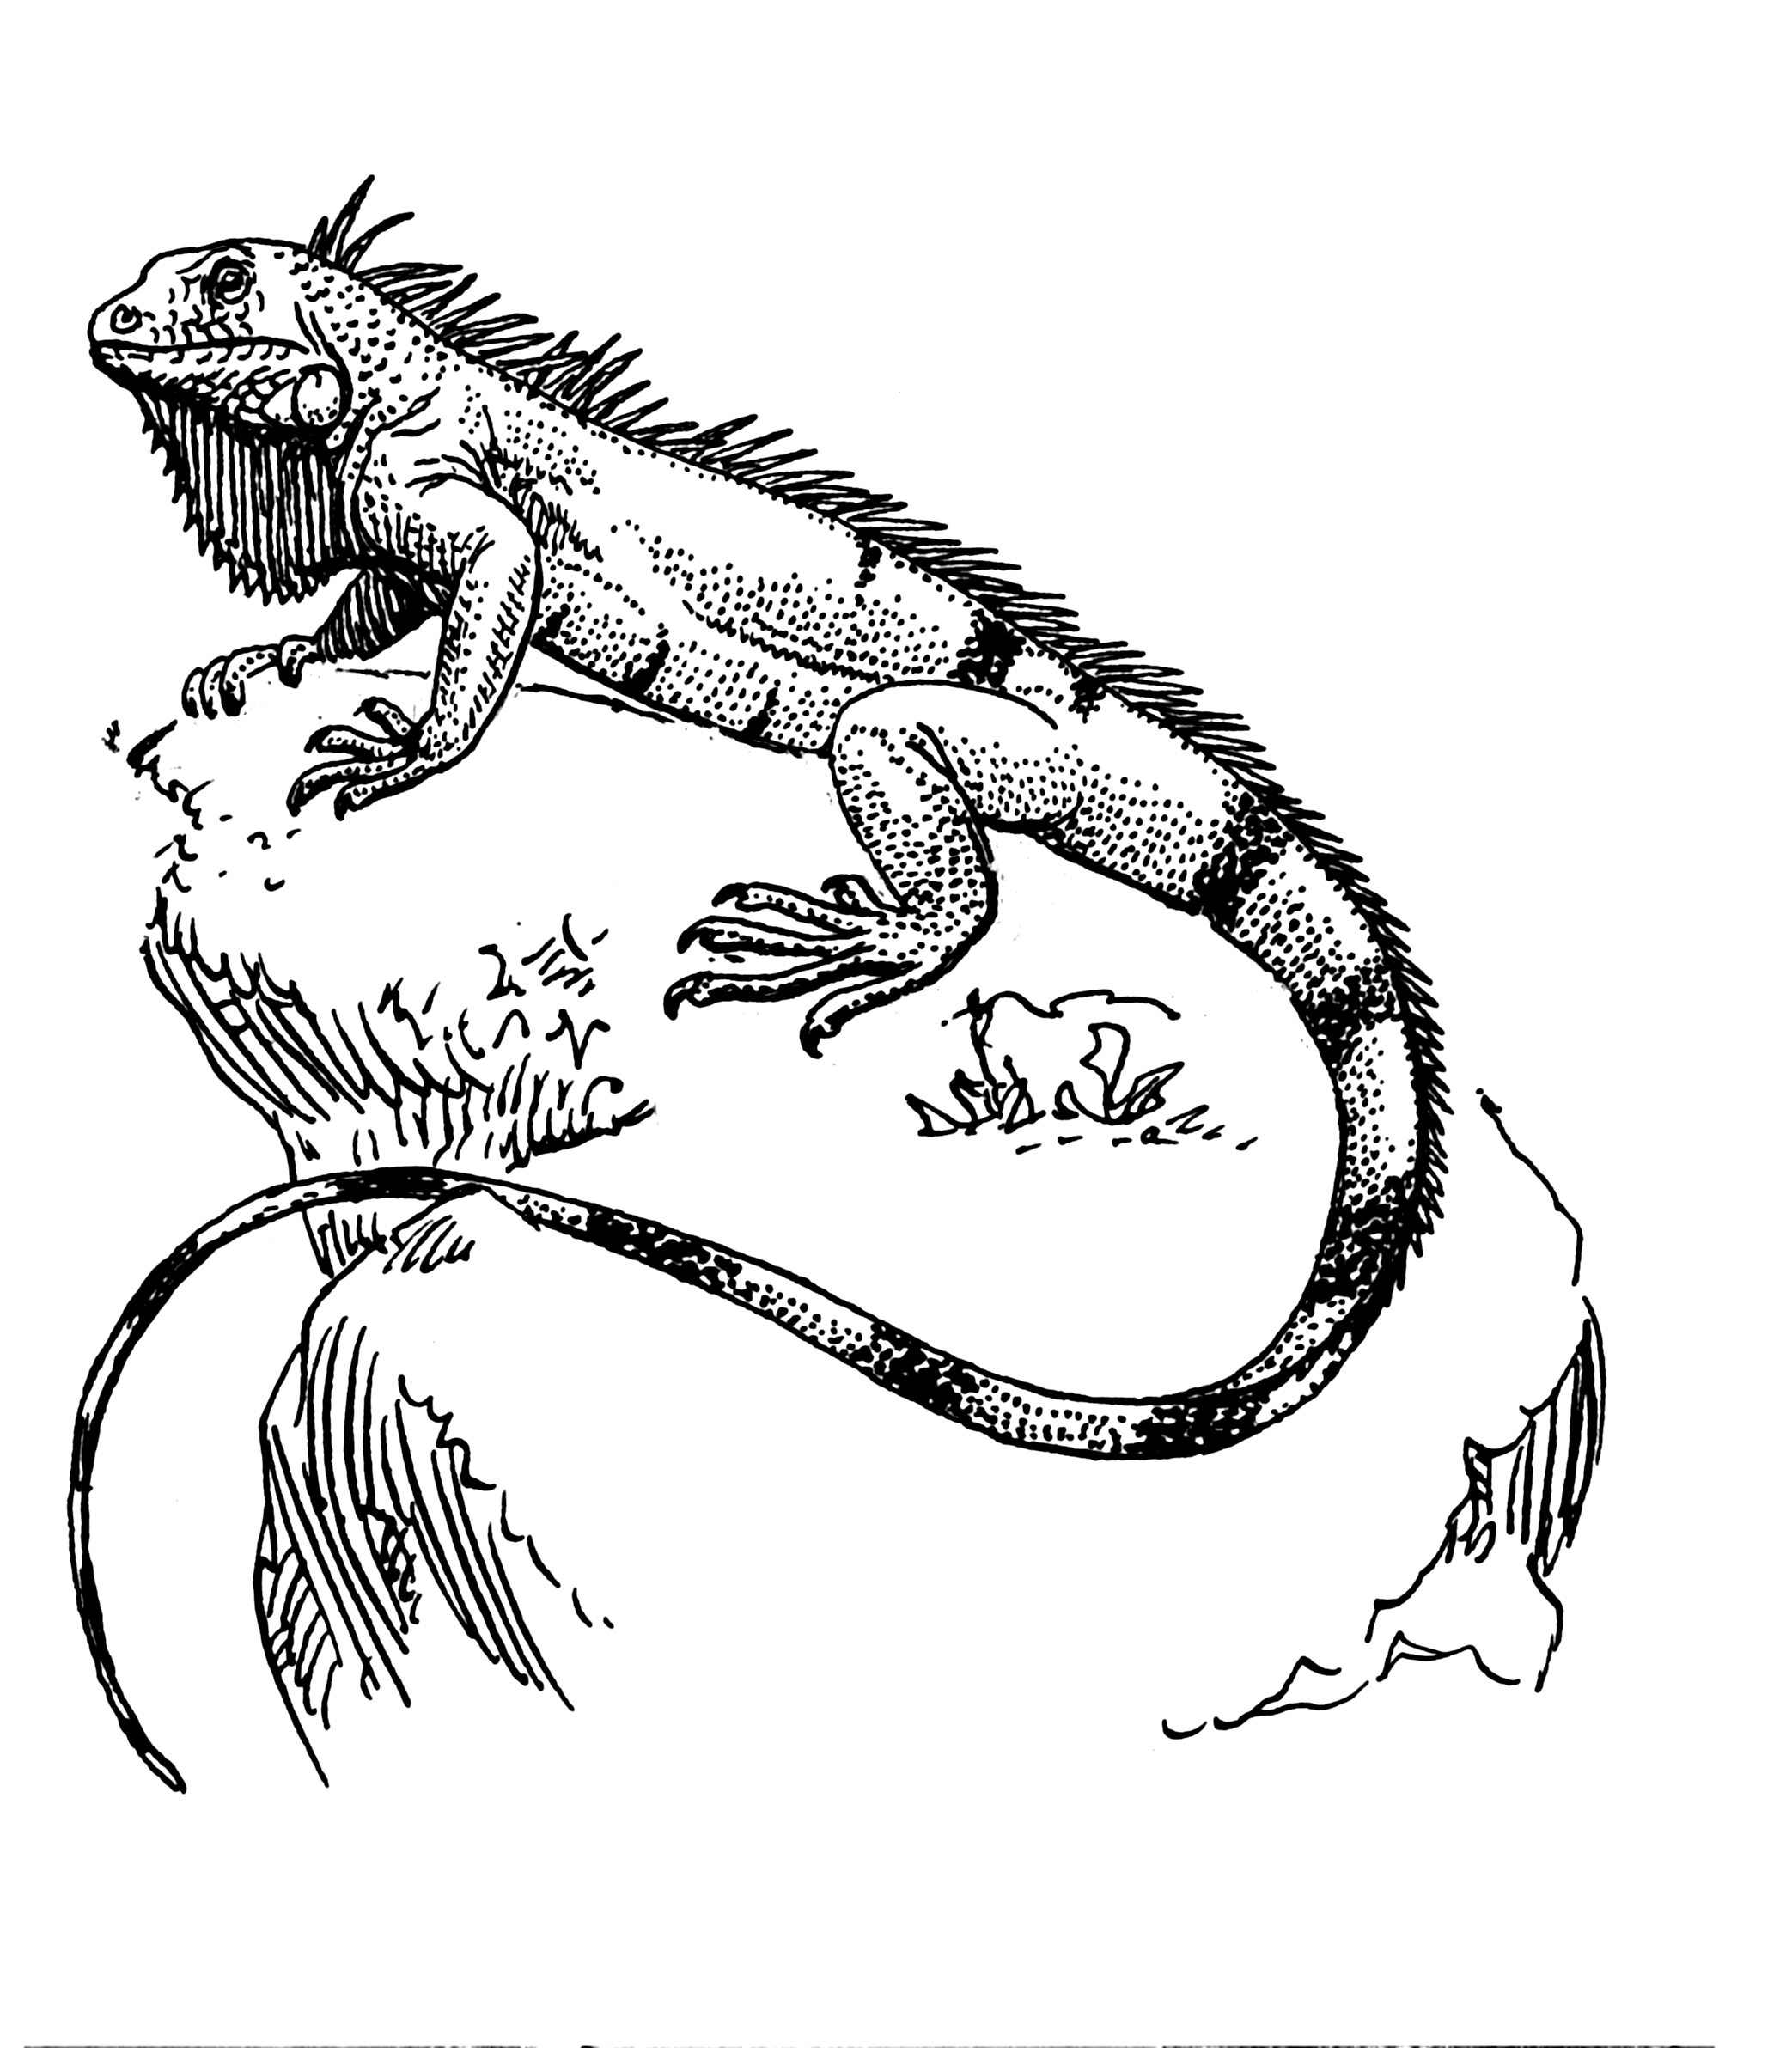 iguana coloring page iguana coloring pages printable coloring pages iguana page coloring